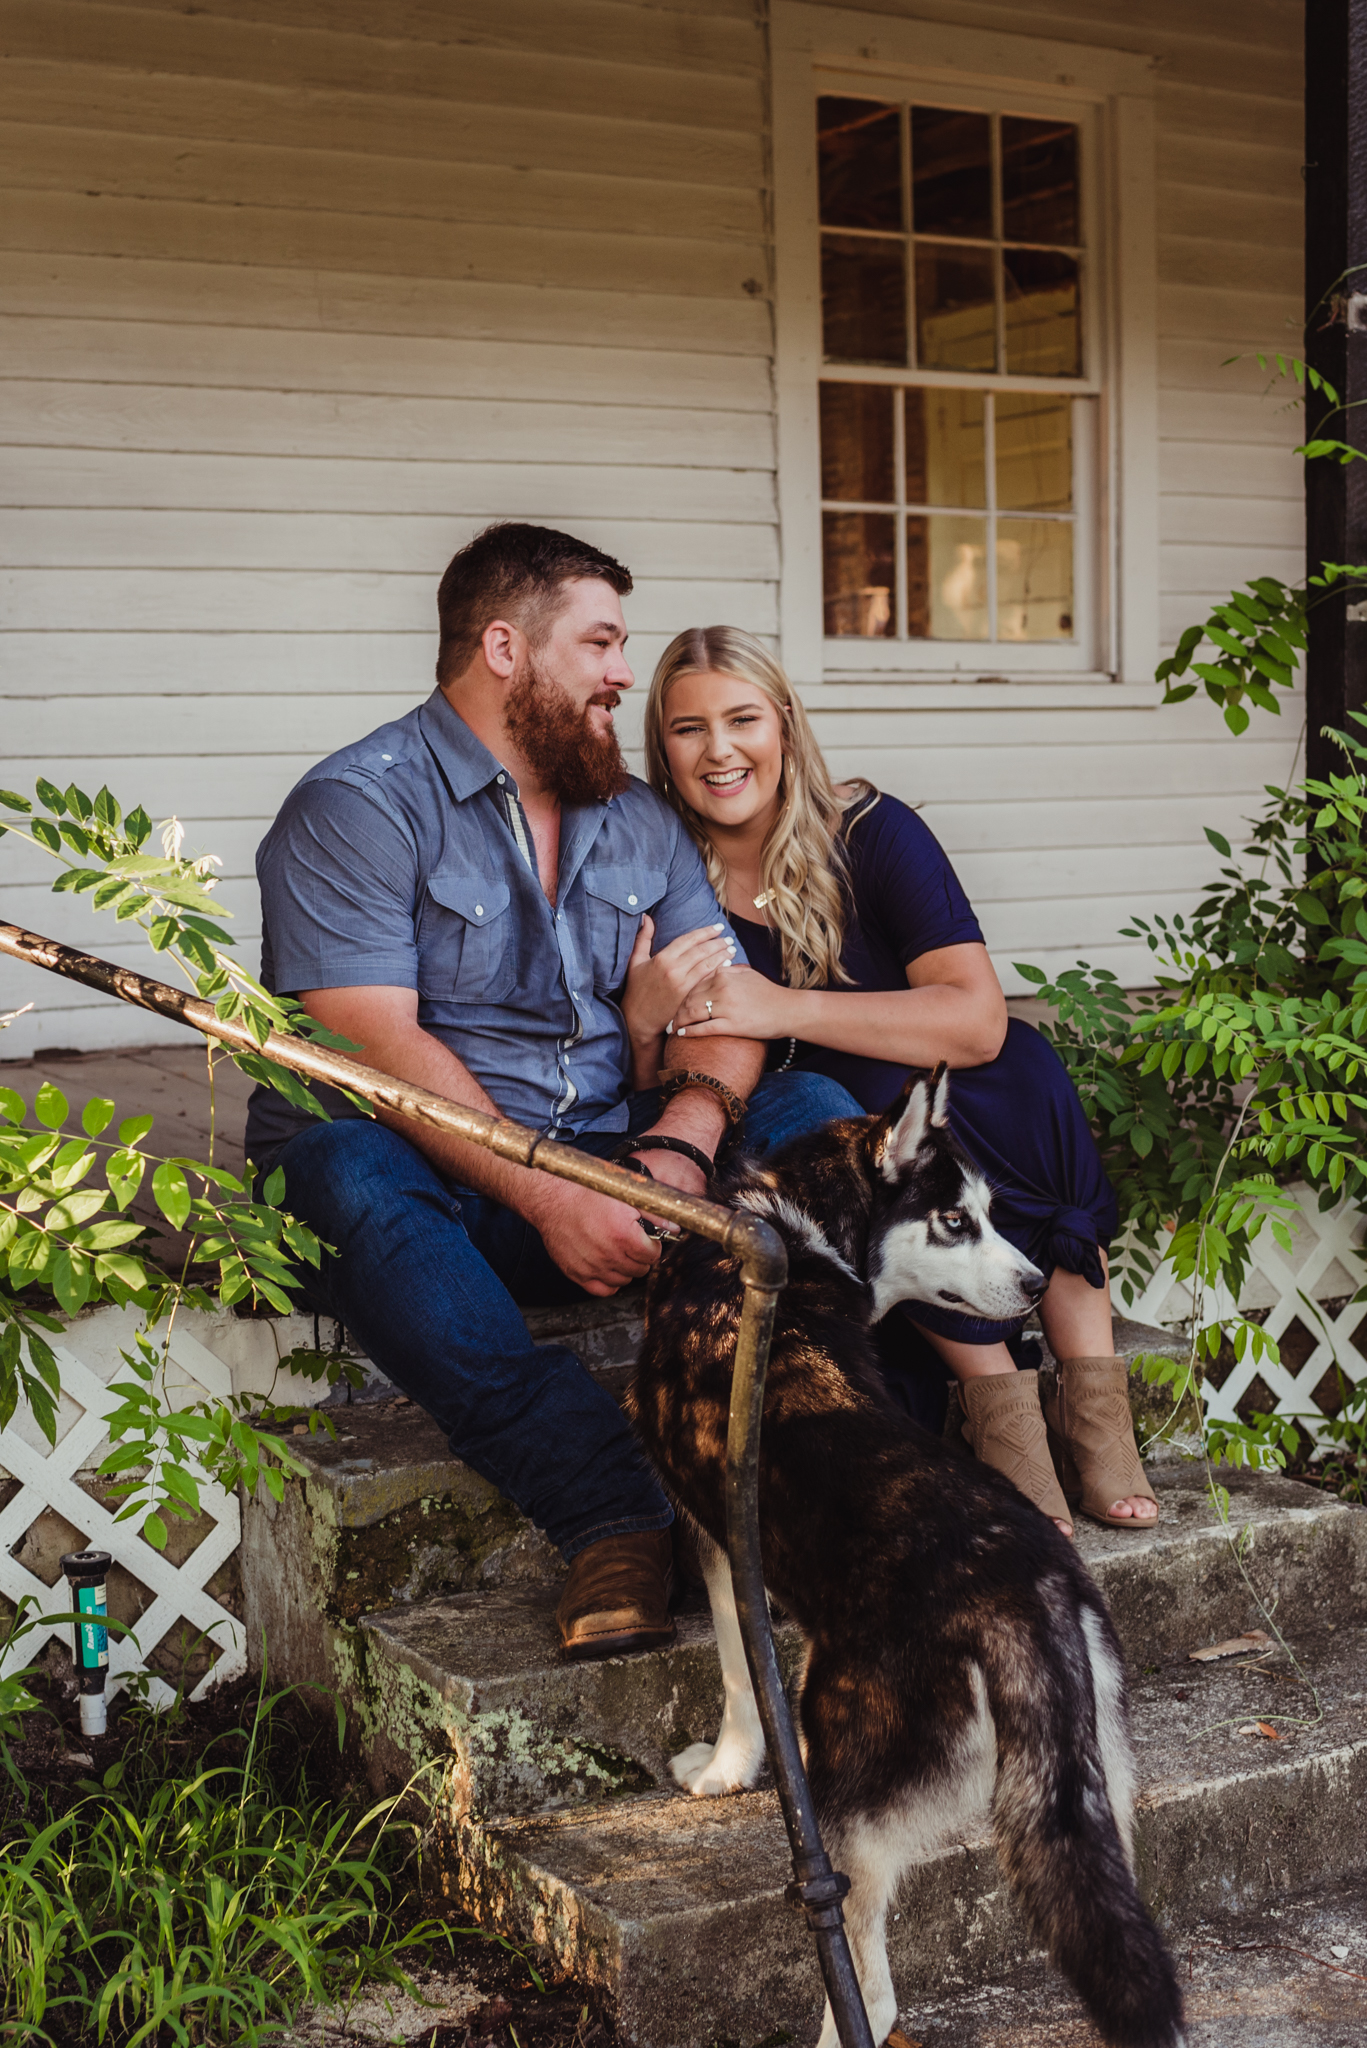 The future bride and groom snuggle up together with their husky pup for their engagement pictures with Rose Trail Images.